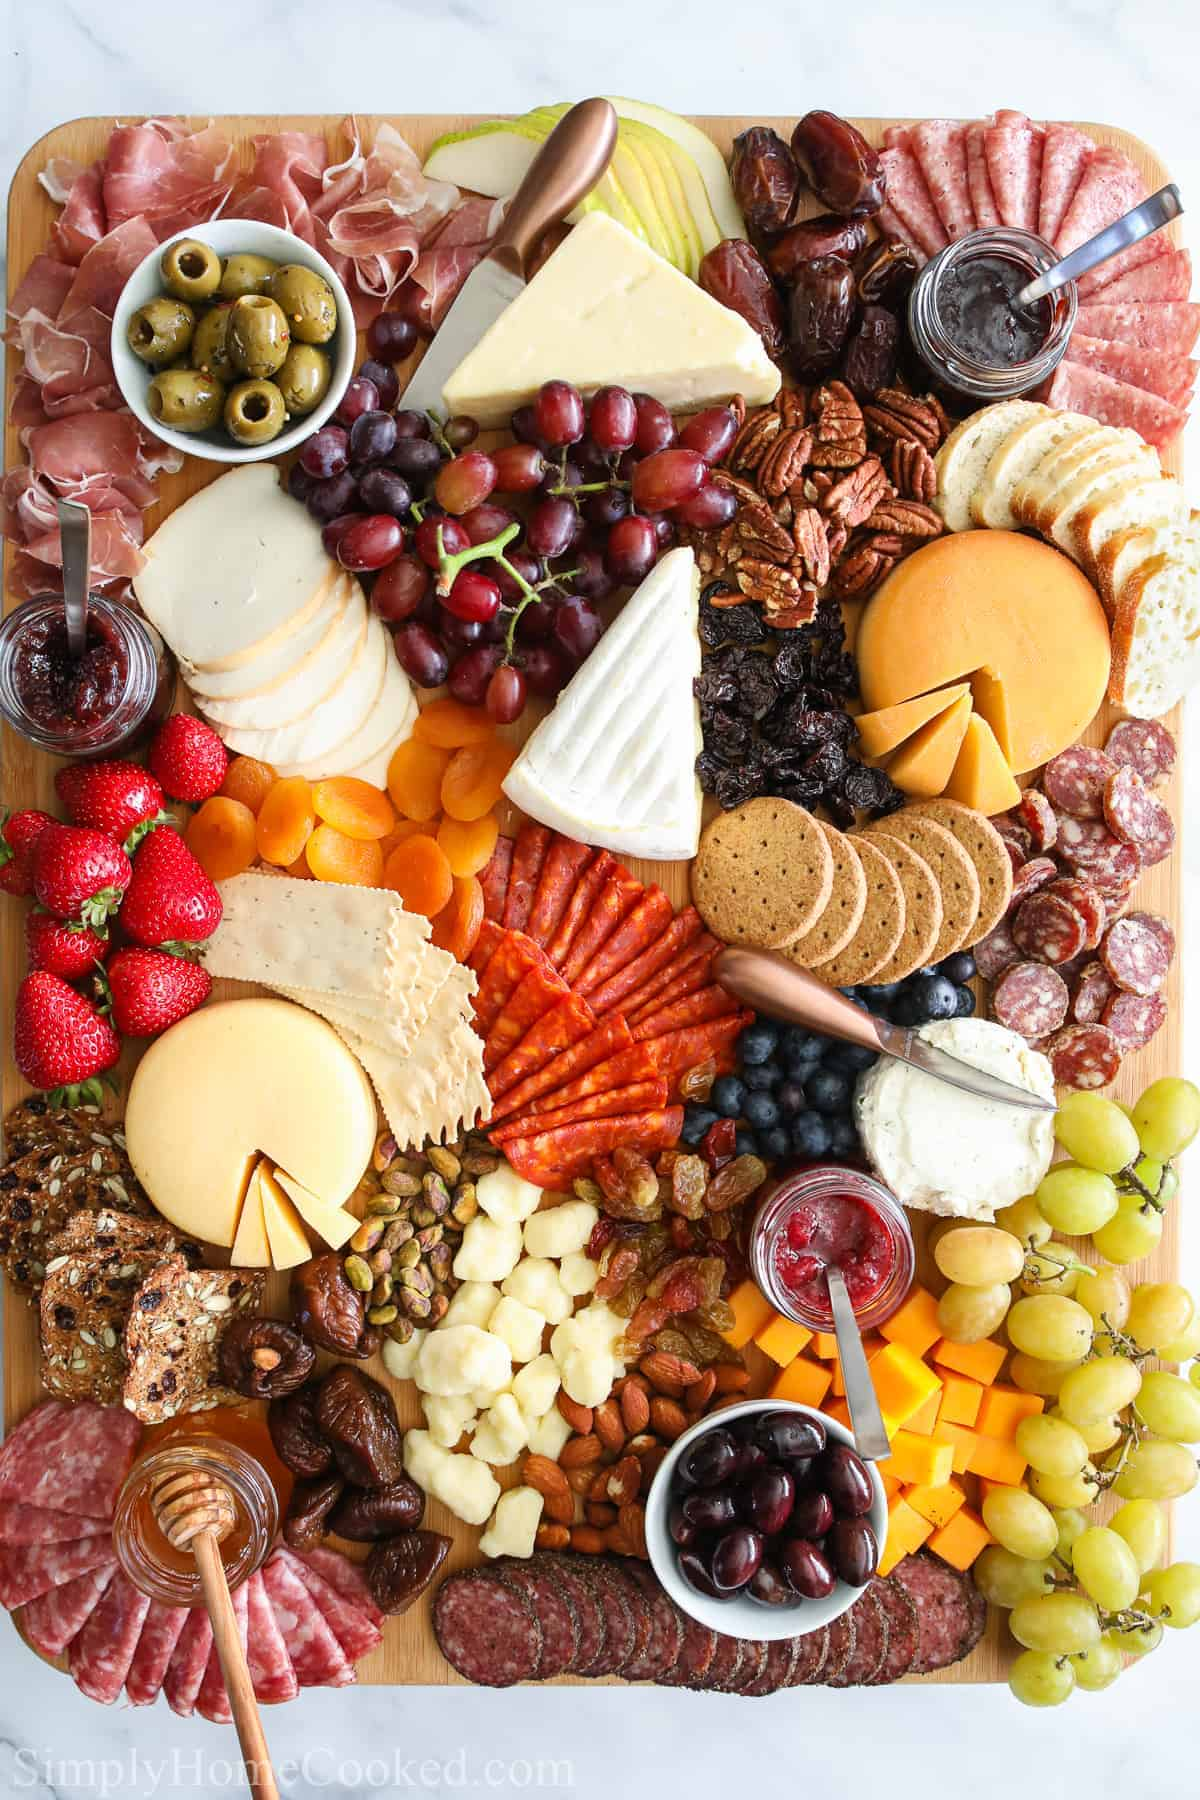 Ultimate Charcuterie Board with an assortment of meats, cheeses, fruit, nuts, bread, crackers, olives, jams, and honey.